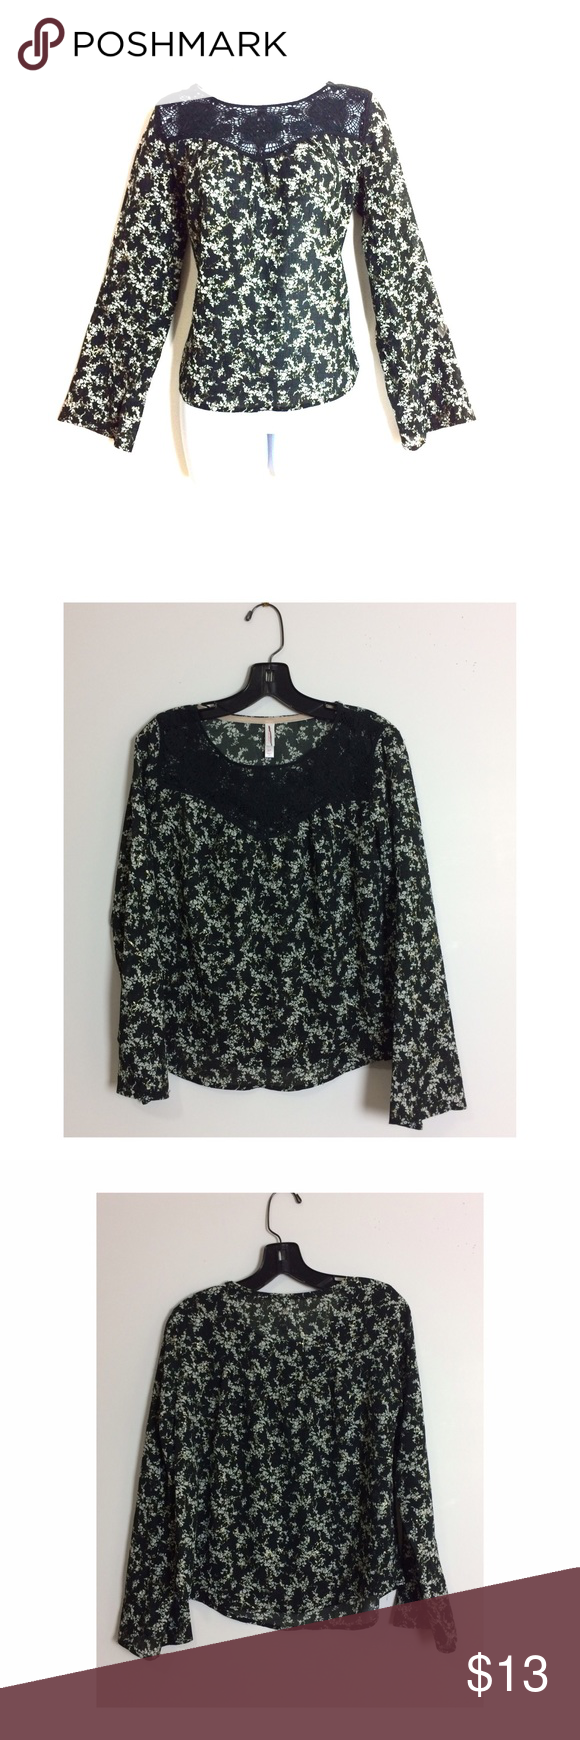 🖤Xhilaration Lace Vintage Blouse🖤 Love this blouse super cute, stylish and trendy! NWOT! PRICE IS NOT FIRM OFFERS ACCEPTED UPON REQUEST...😊 Measurements: Armpit to Armpit: 19 Length:21 This listing is BRAND NEW WITHOUT TAGS! Material: 98% Polyester 2% Spandex Lace: 100% Polyester Xhilaration Tops Blouses